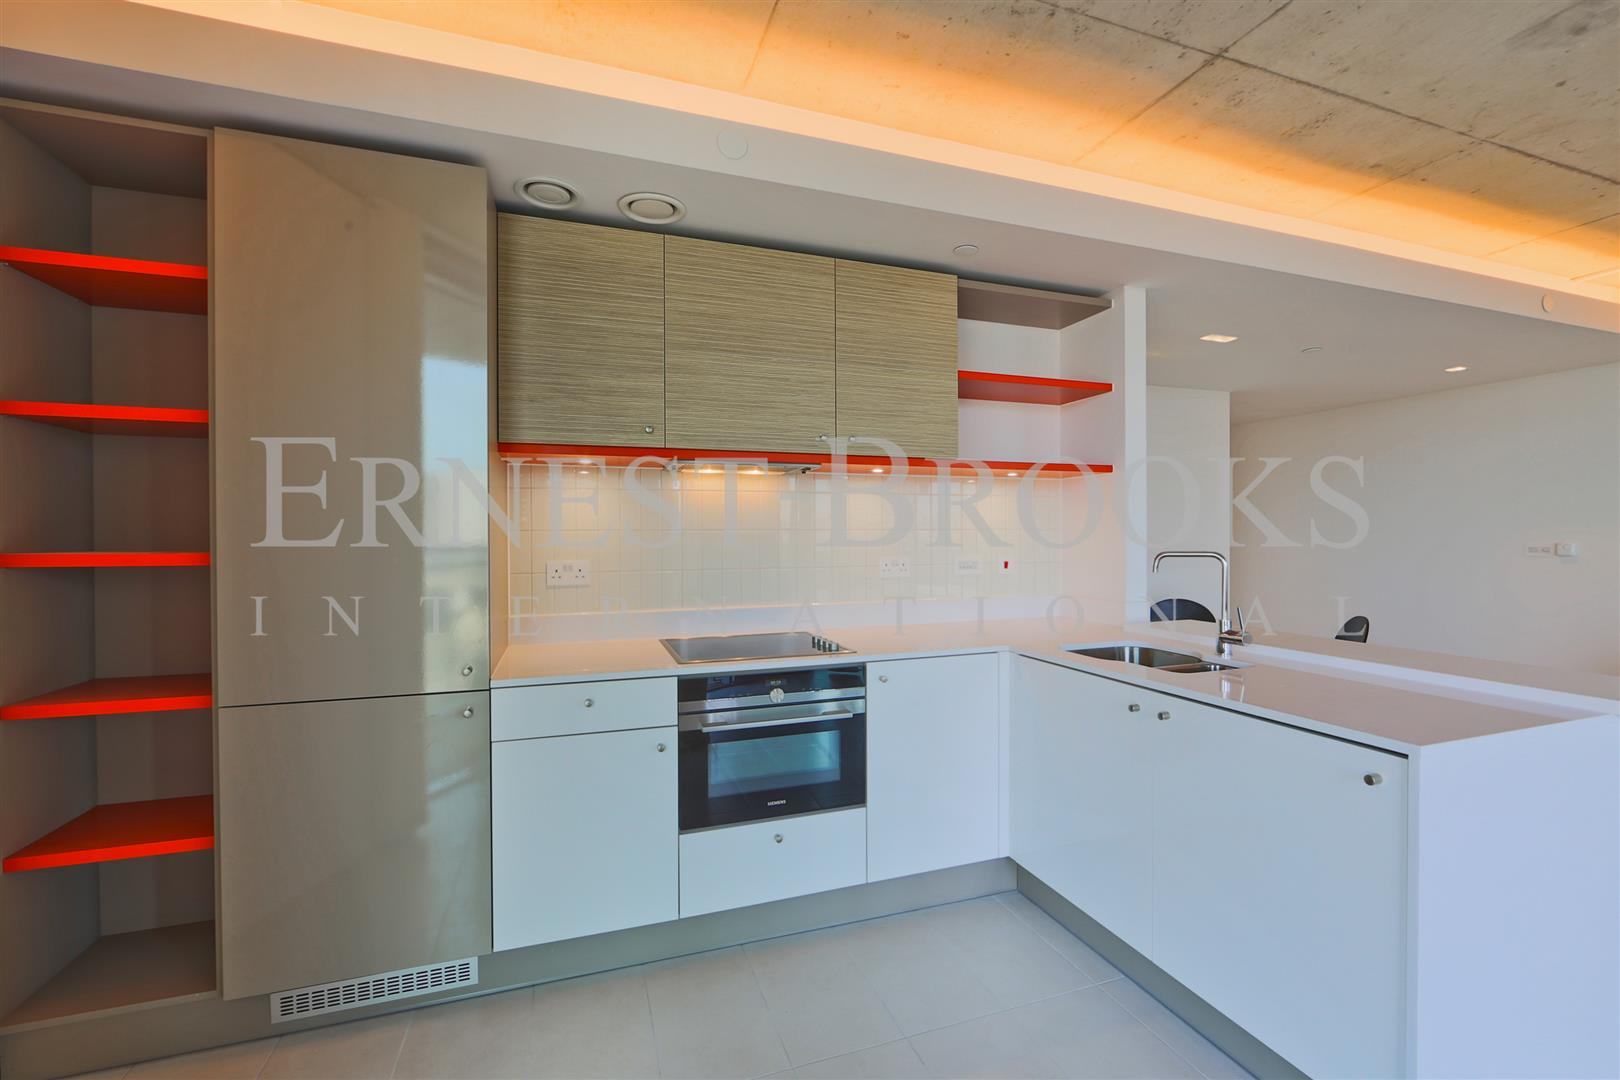 Siemens,Kitchen